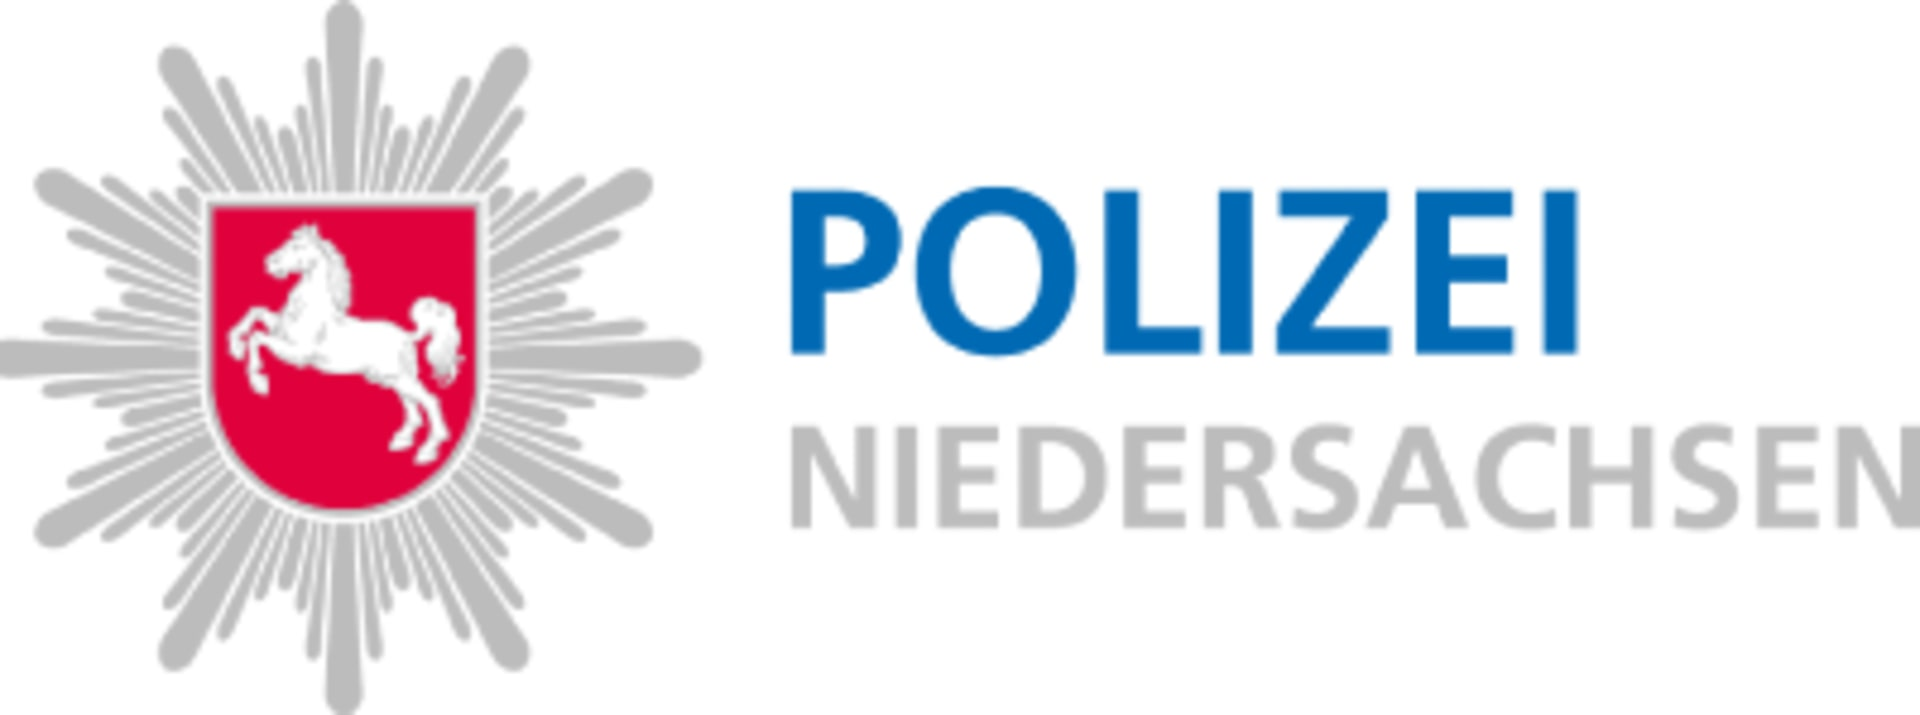 shows the logo from the company Polizei